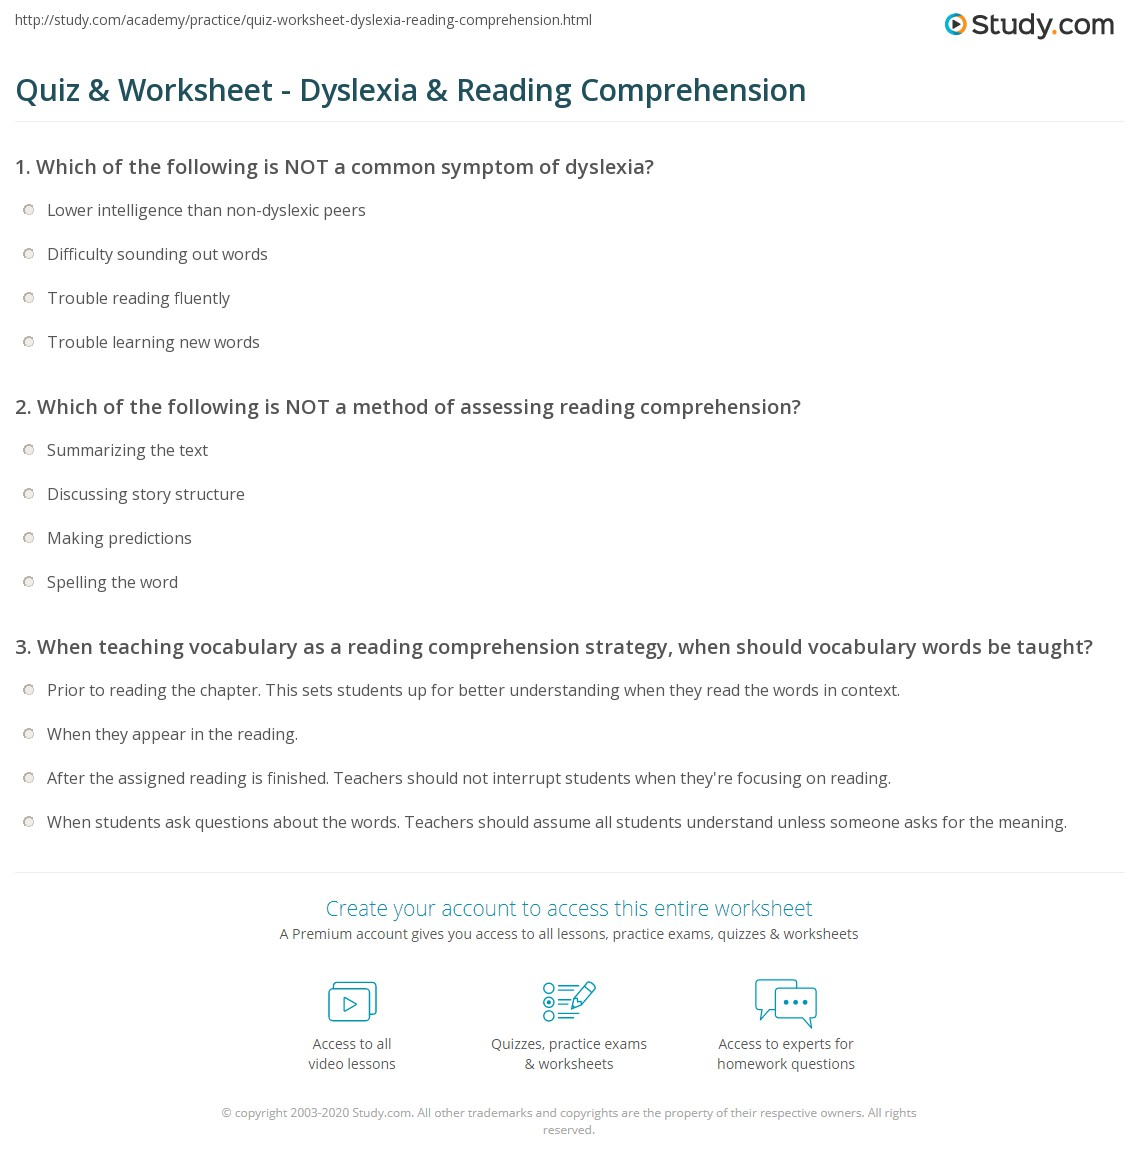 Quiz & Worksheet - Dyslexia & Reading Comprehension | Study.com